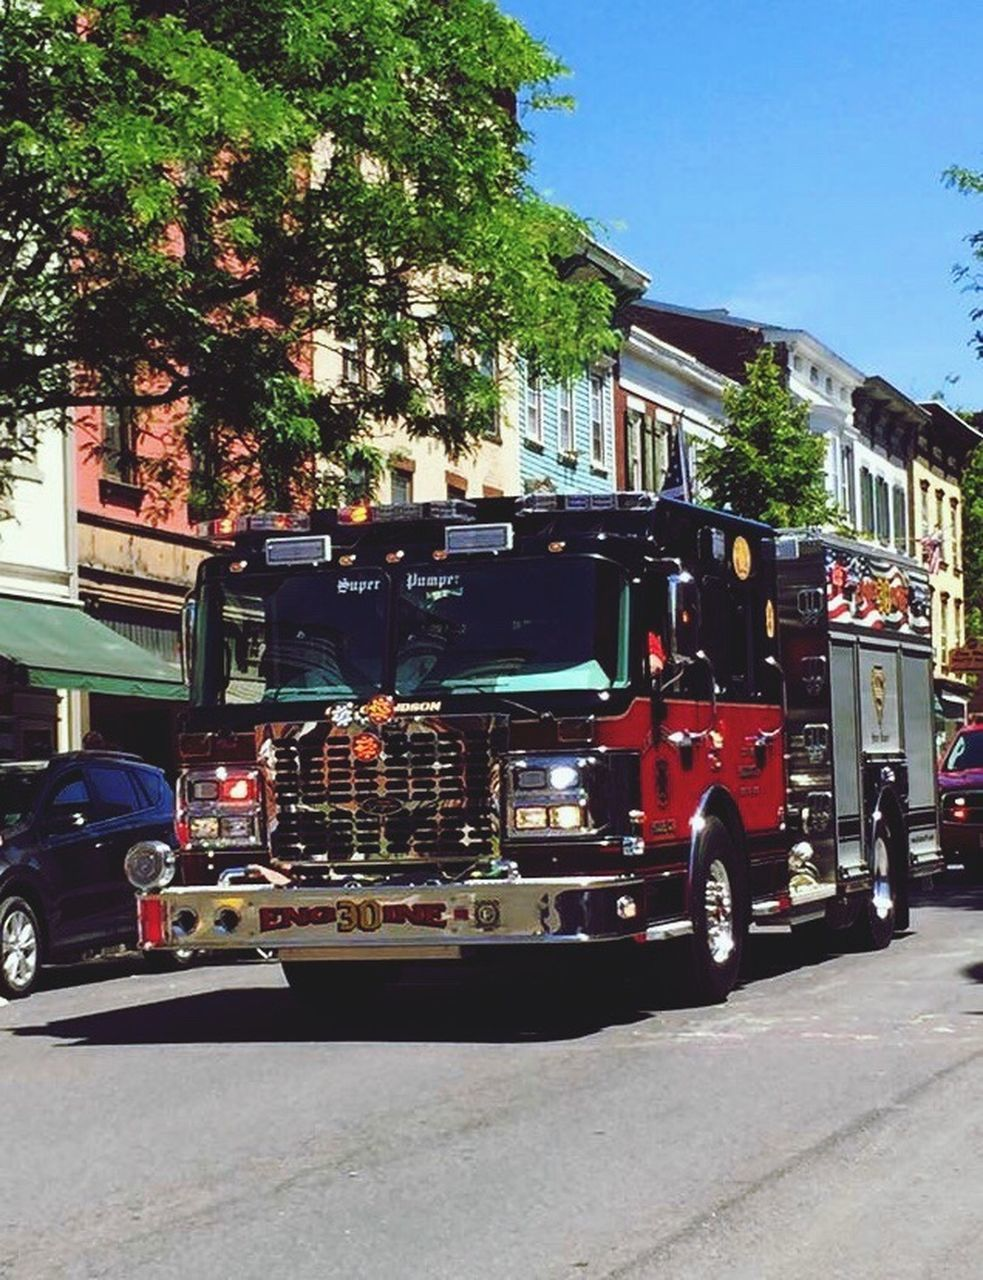 building exterior, built structure, architecture, land vehicle, outdoors, day, real people, fire engine, road, men, tree, firefighter, sky, city, people